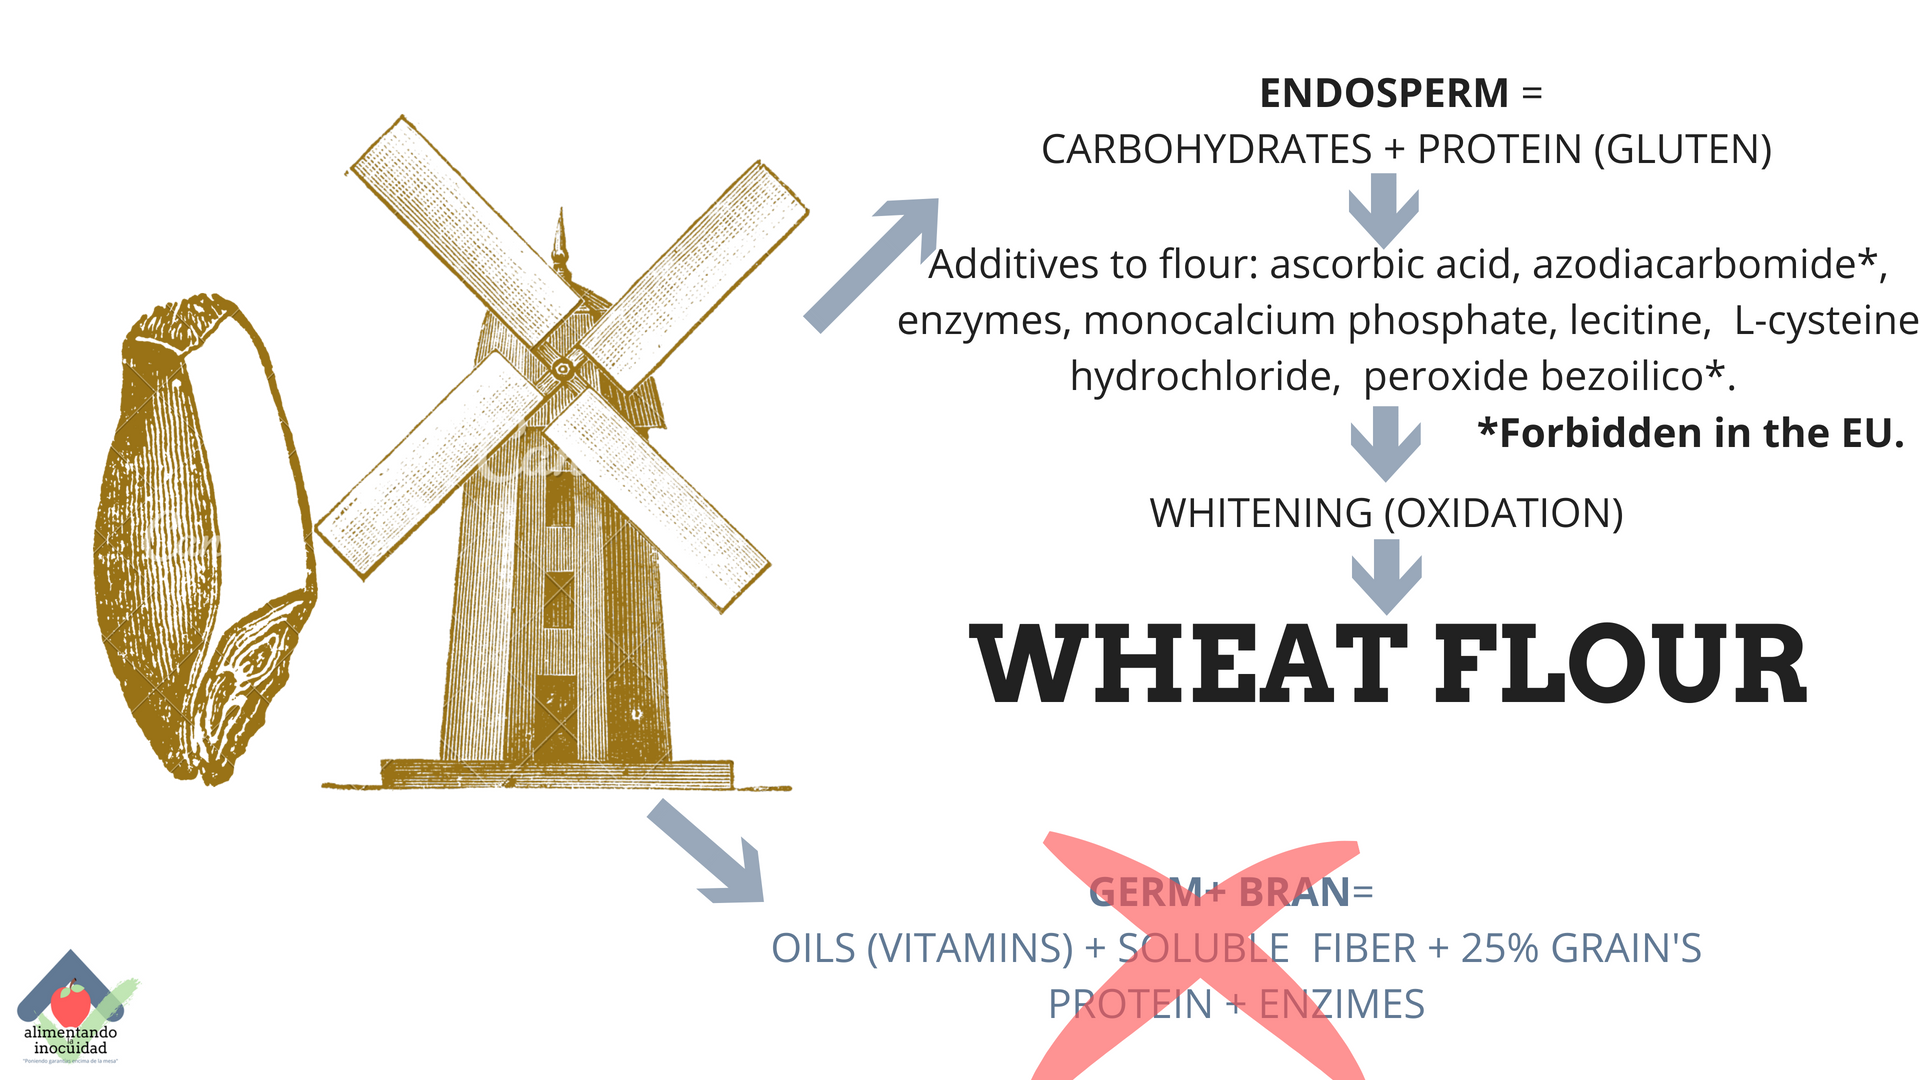 Wheat flour manufacturing.